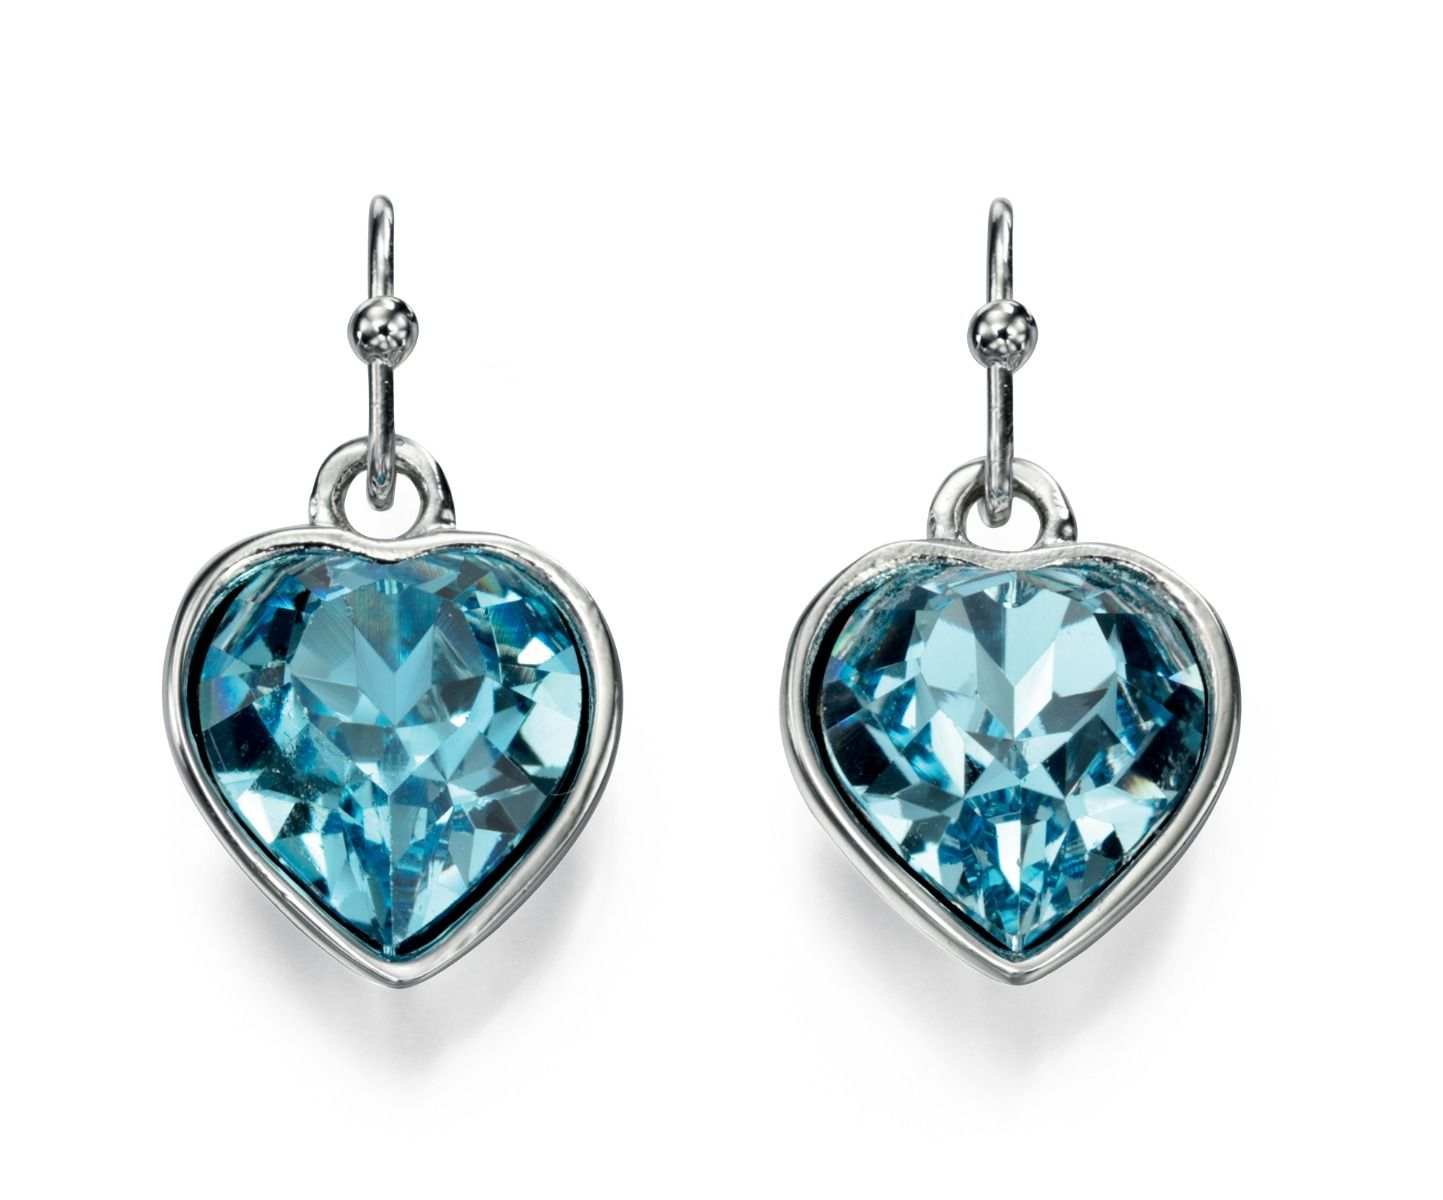 Fiorelli Fashion Imitation Rhodium Plated Blue Crystal by Swarovski Heart Hook Earrings